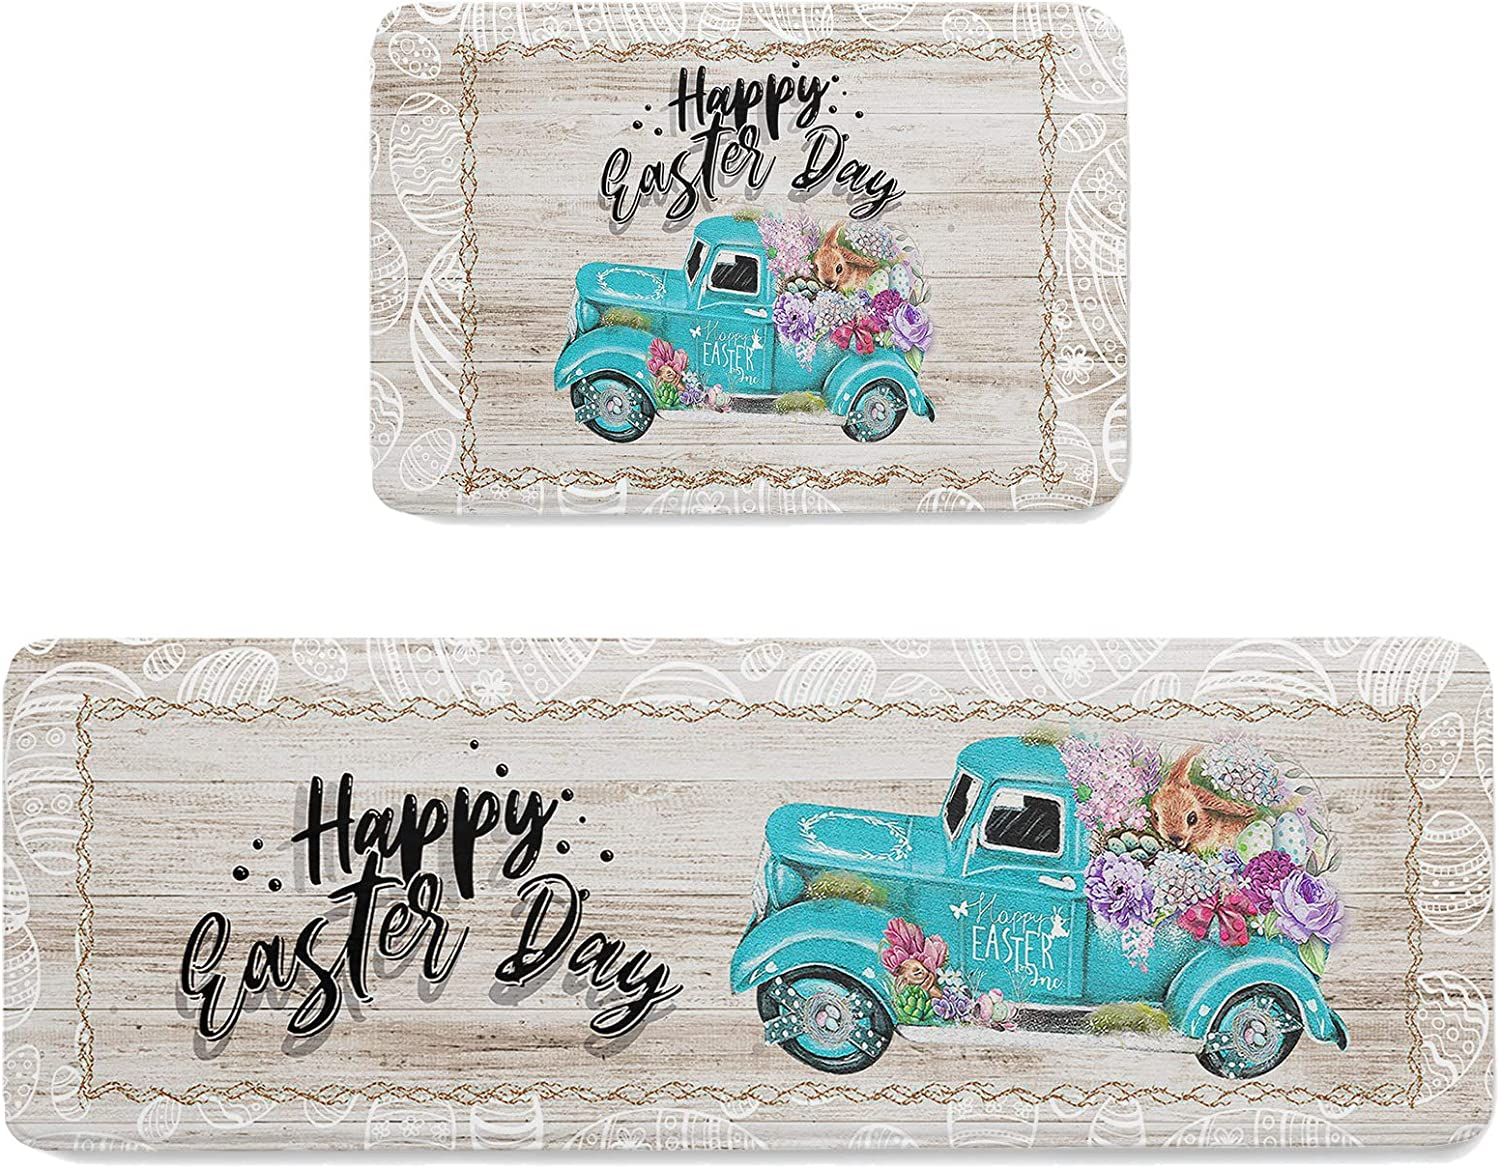 Kitchen Mats Teal Ranking TOP5 Truck with Colorful Under blast sales for Eggs Rug Laundr Runner